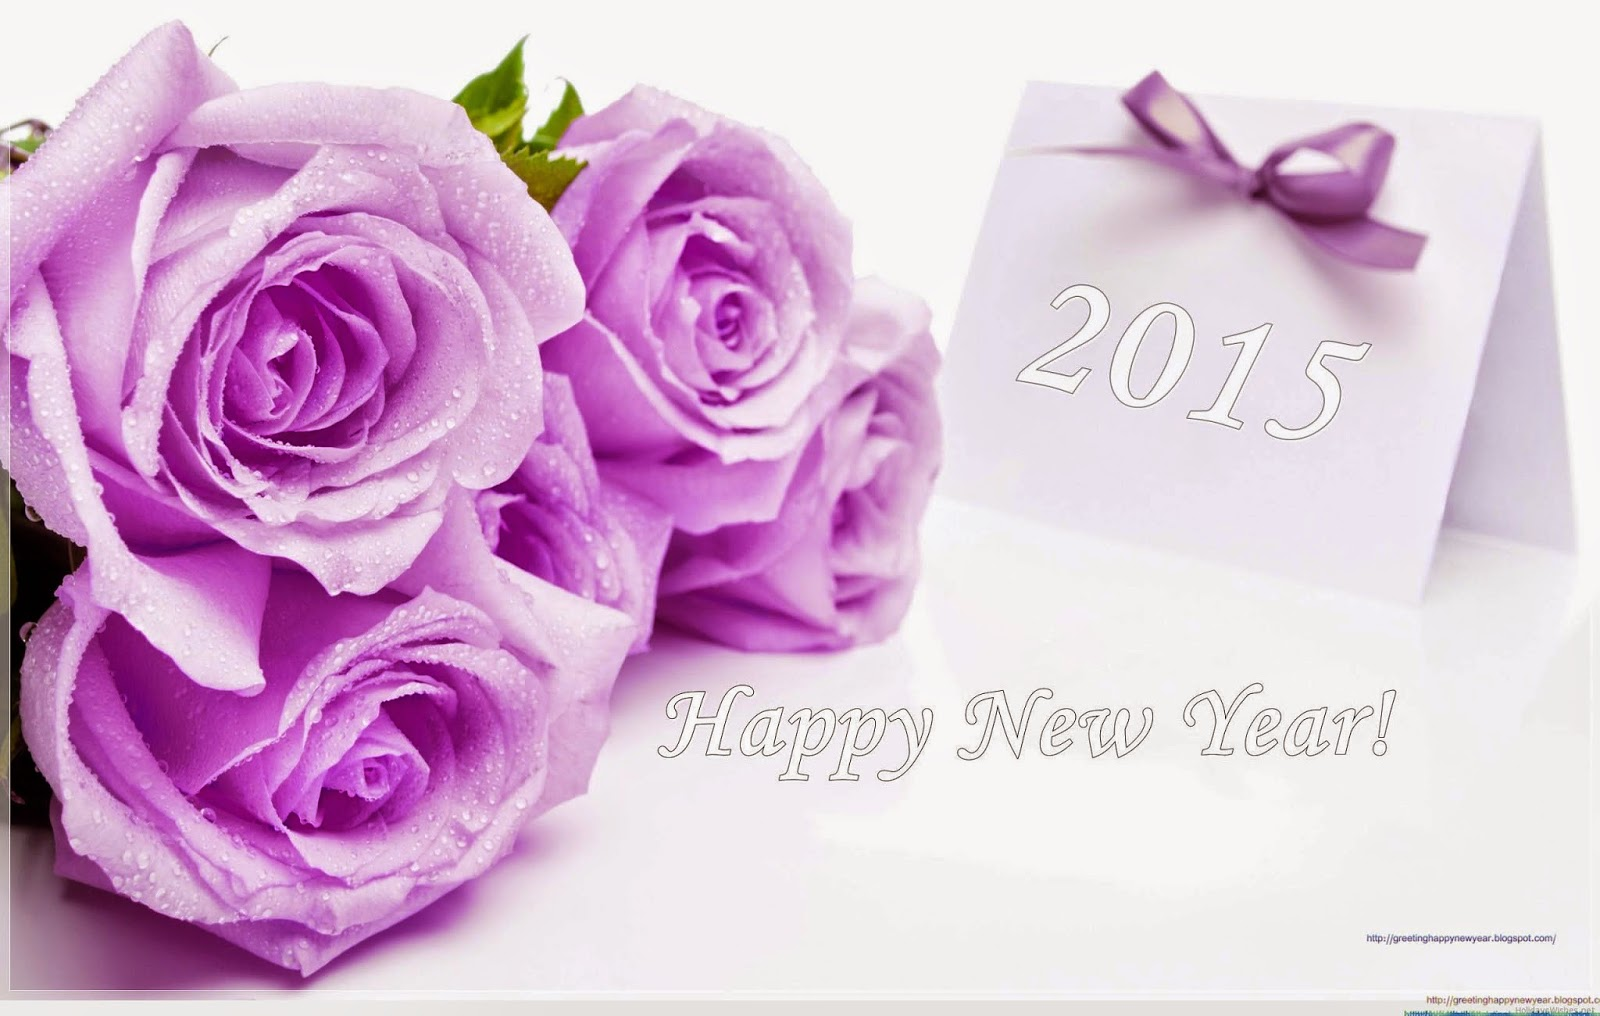 Happy New Year 2015 HD Wallpaper - For Free Downloads